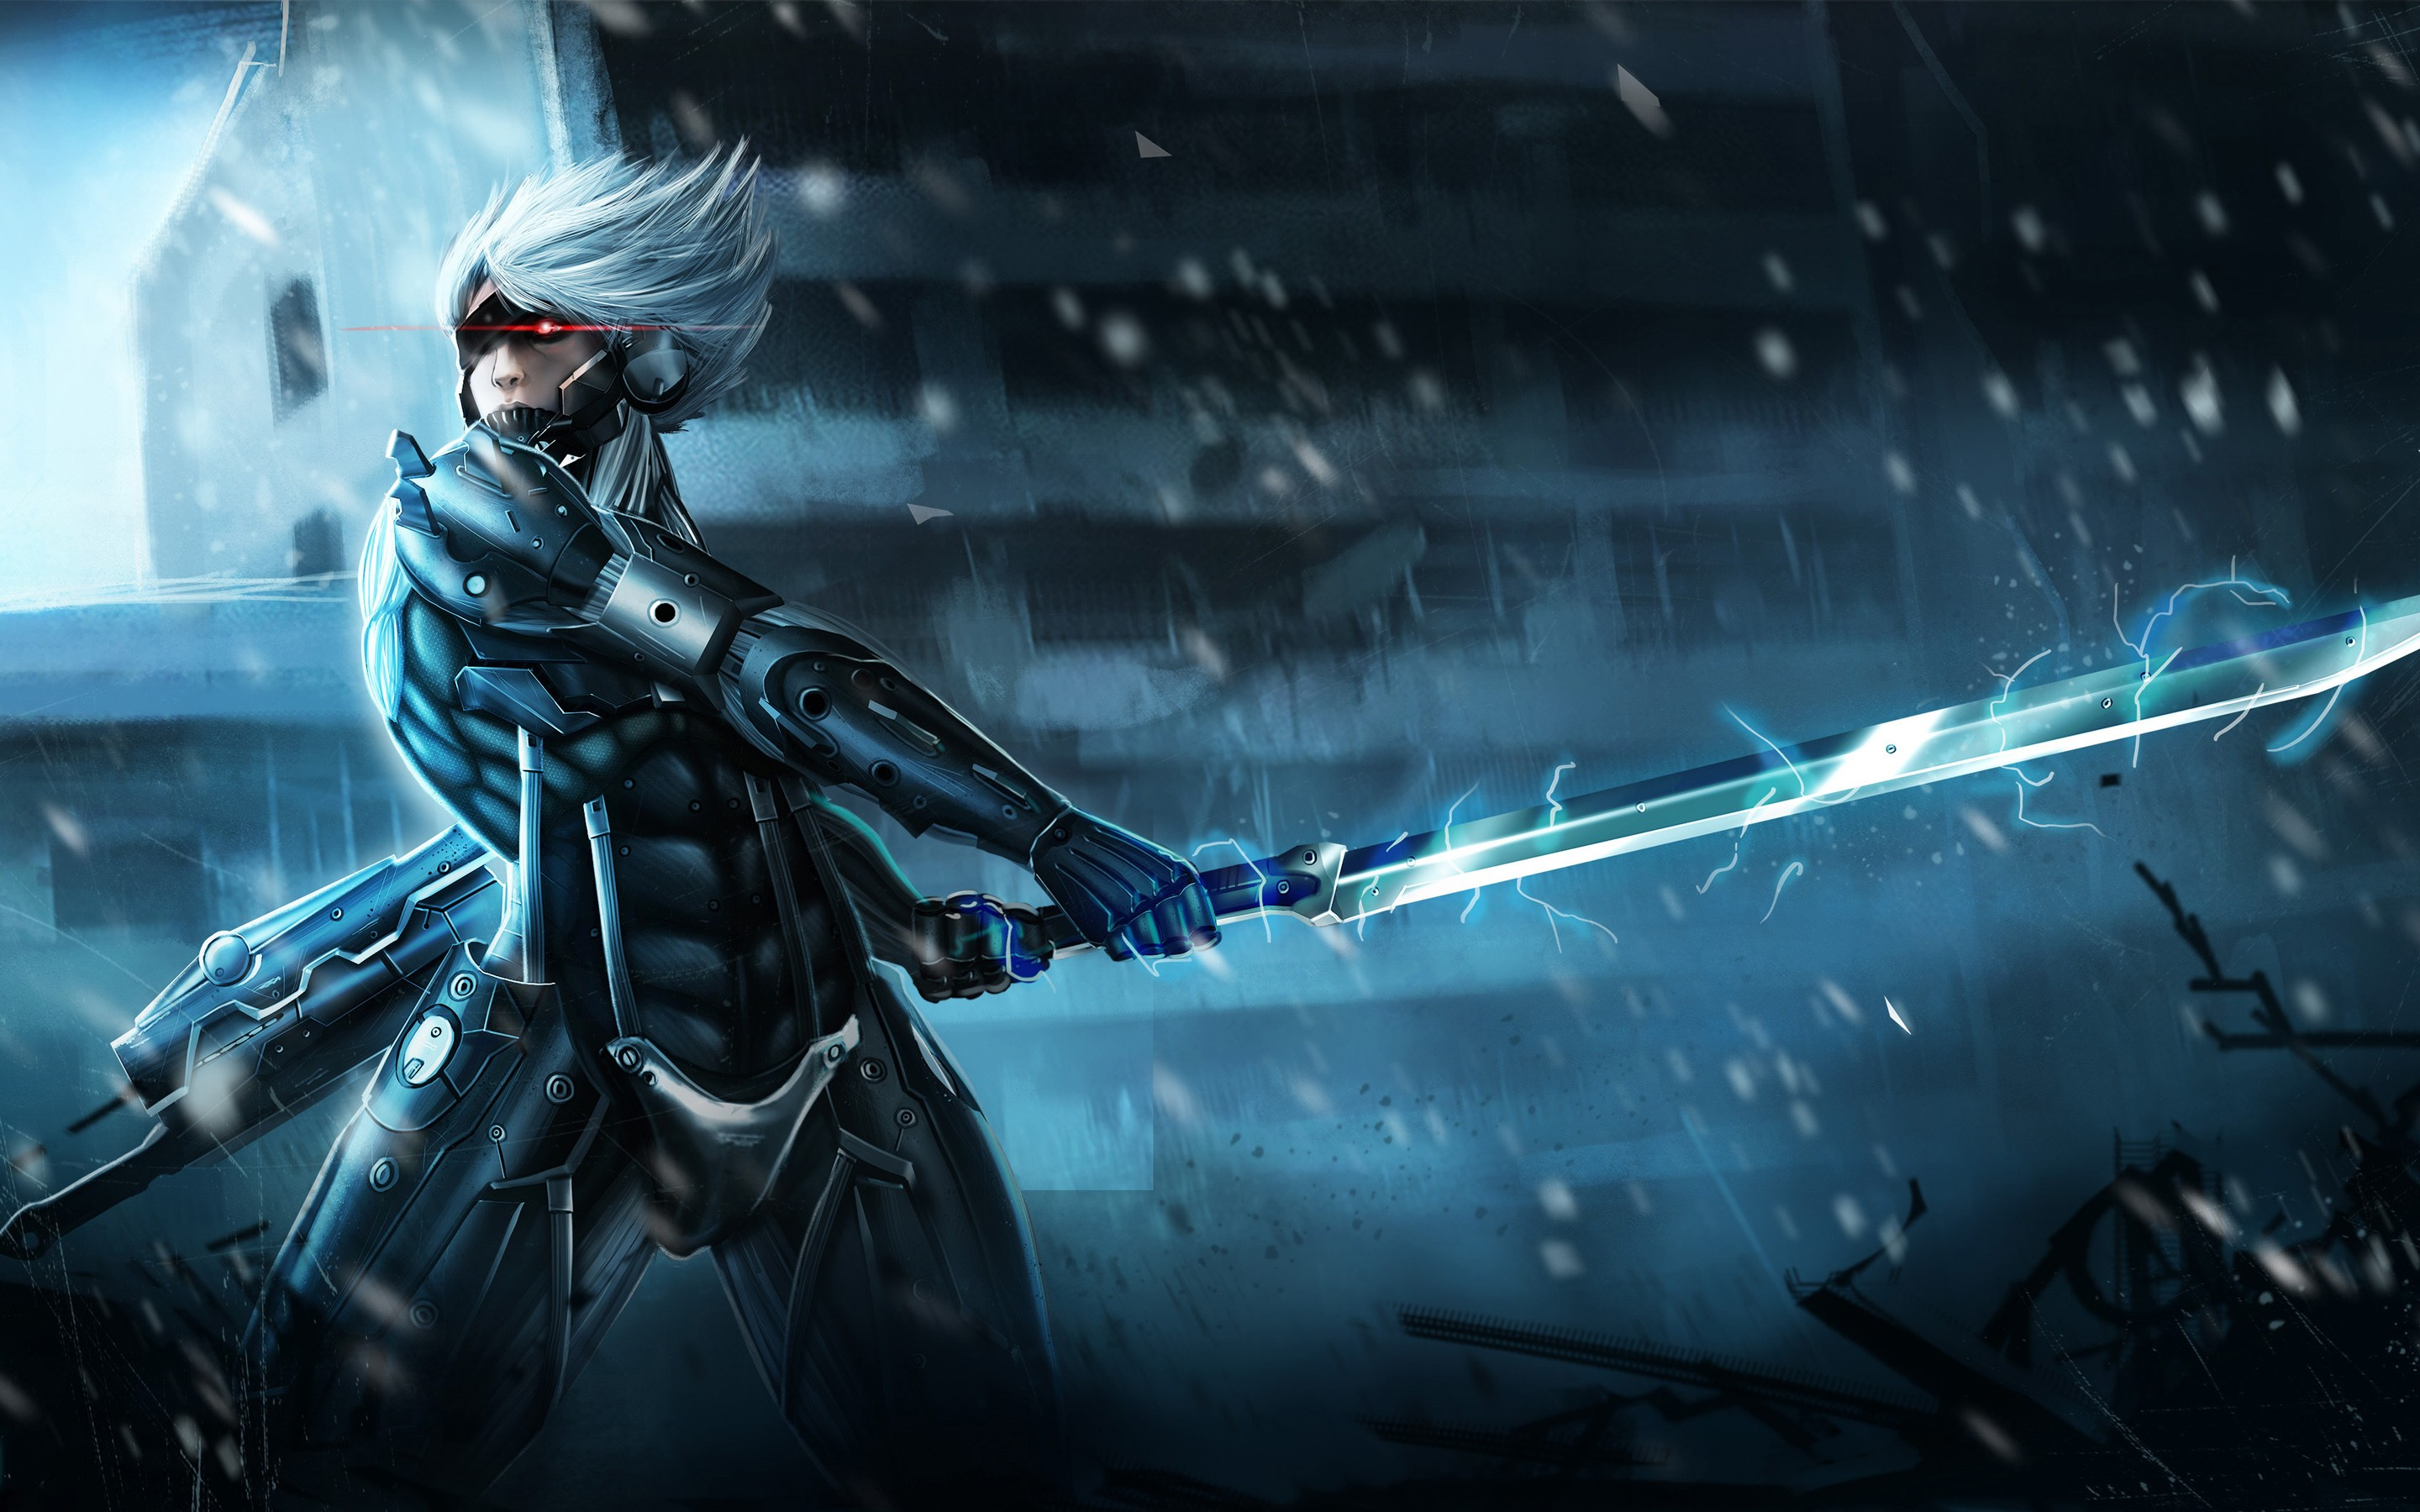 42 Hd Raiden Wallpaper On Wallpapersafari: Metal Gear Rising Raiden, HD Games, 4k Wallpapers, Images